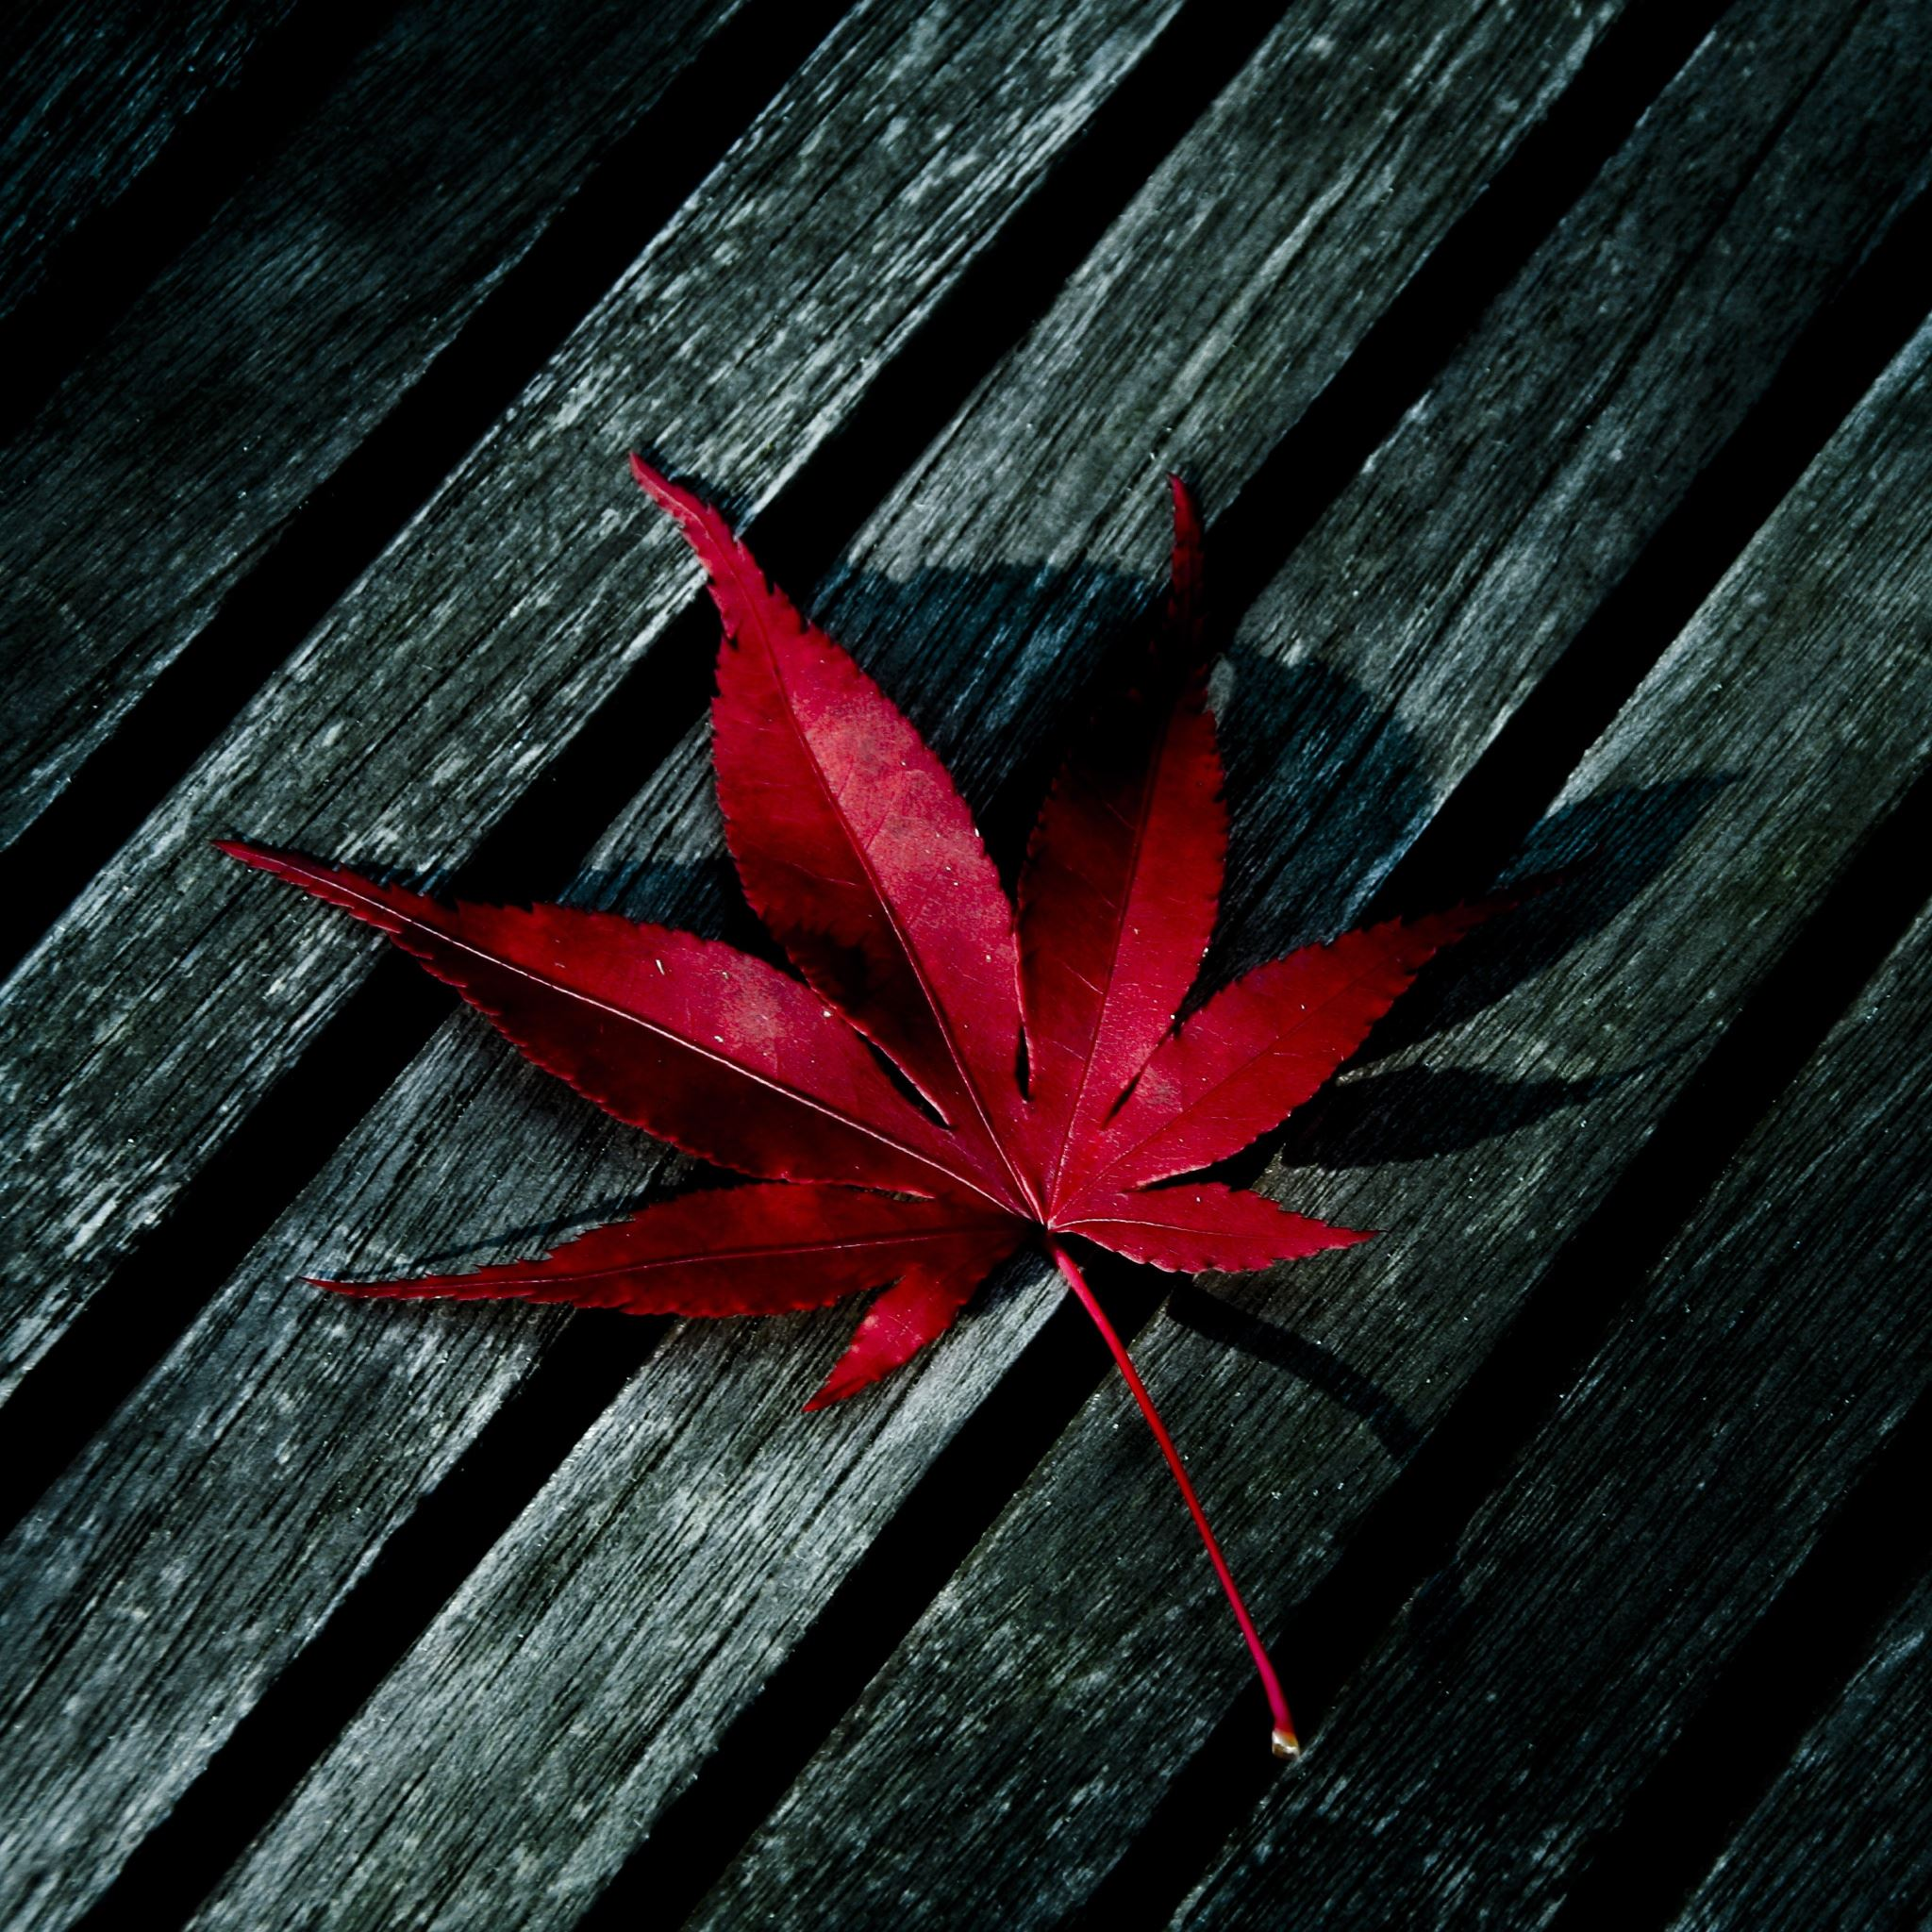 Red Leaf iPad Air wallpaper